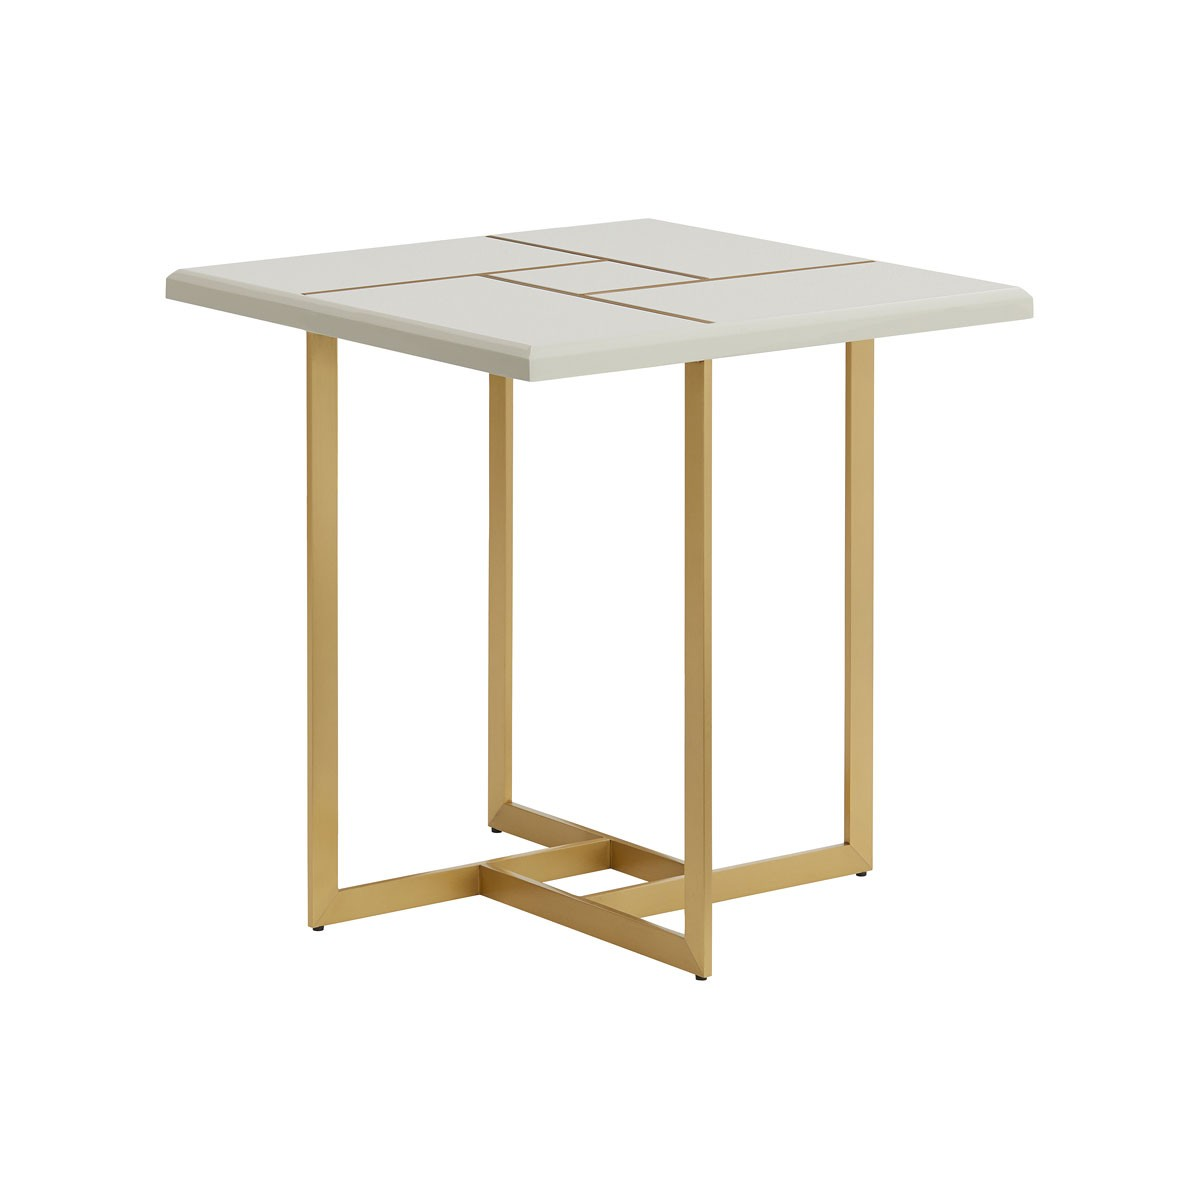 The Gabriel Side Table